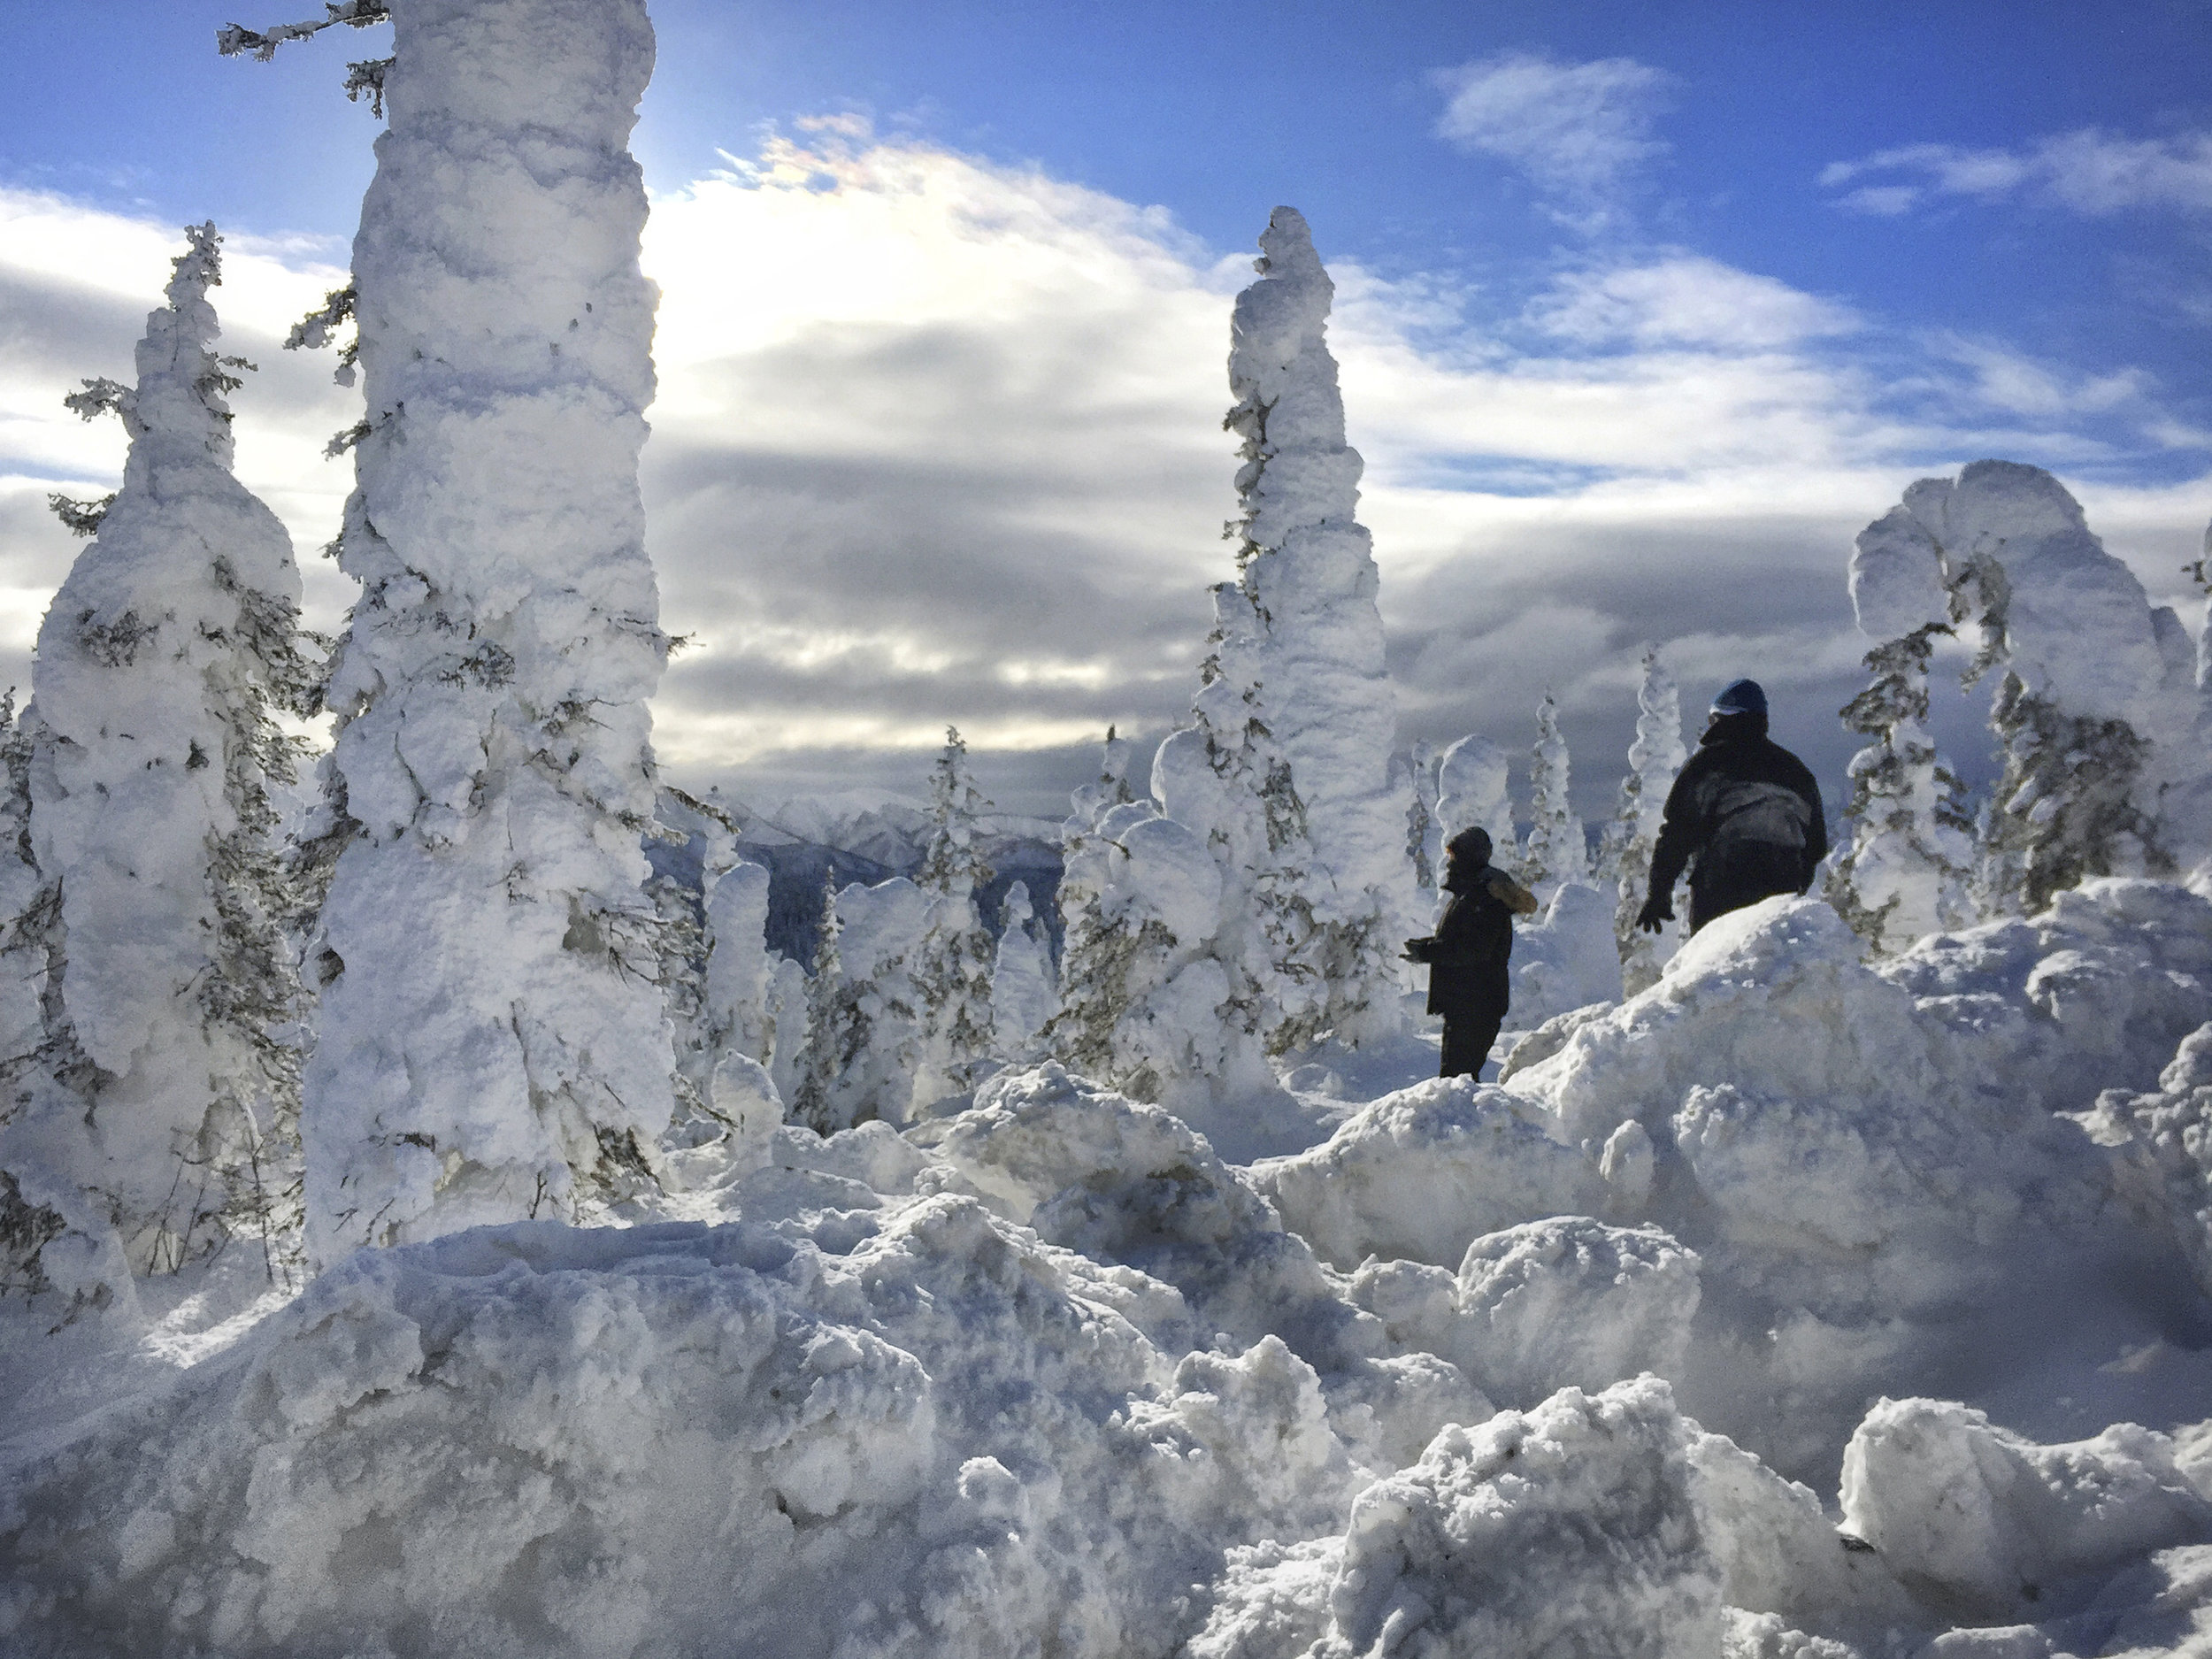 """""""Arctic Crust"""". Visitors stand in the """"Enchanted Forest"""", an area off the Dalton Highway known for snow encrusted Black spruce trees."""